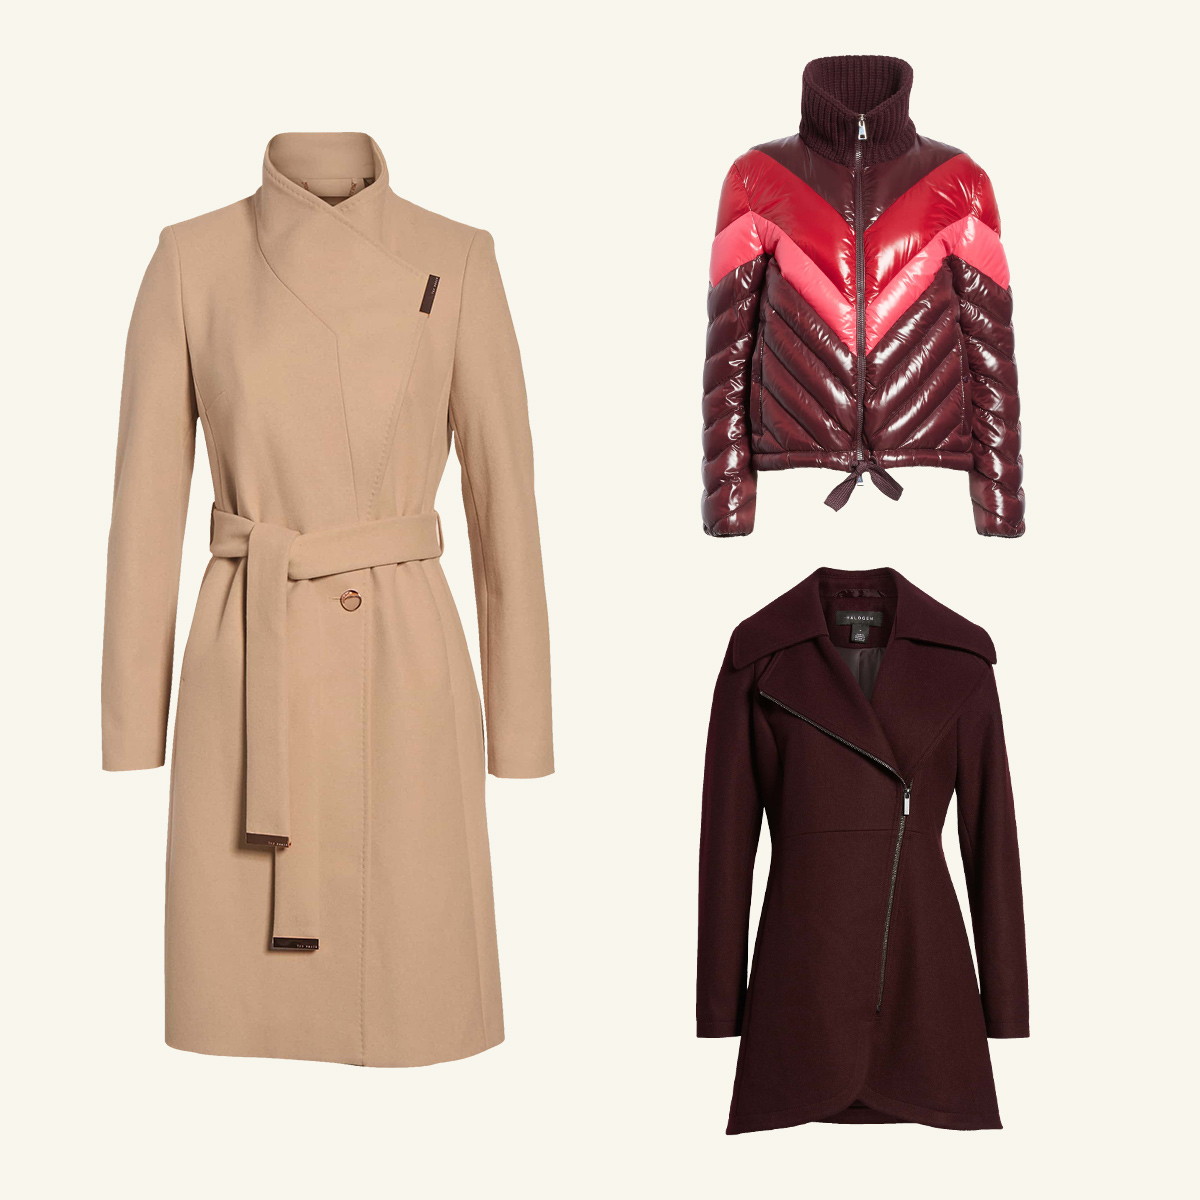 Three women's coats meant to be worn in moderate weather.